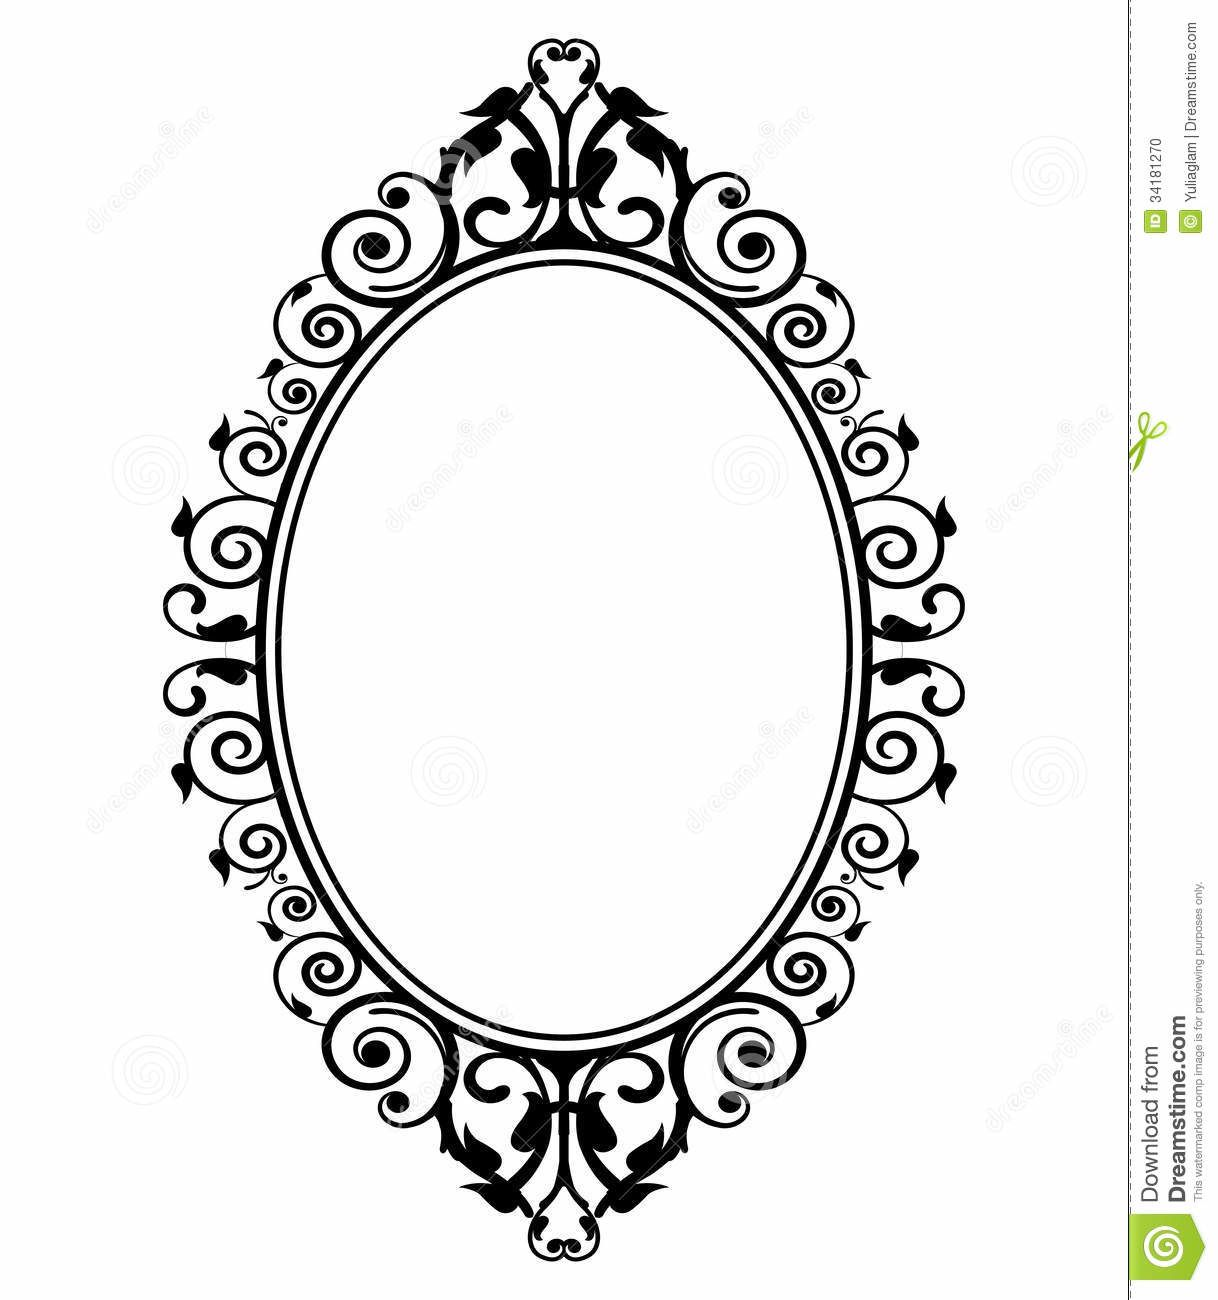 hand held mirror coloring pages - photo#26